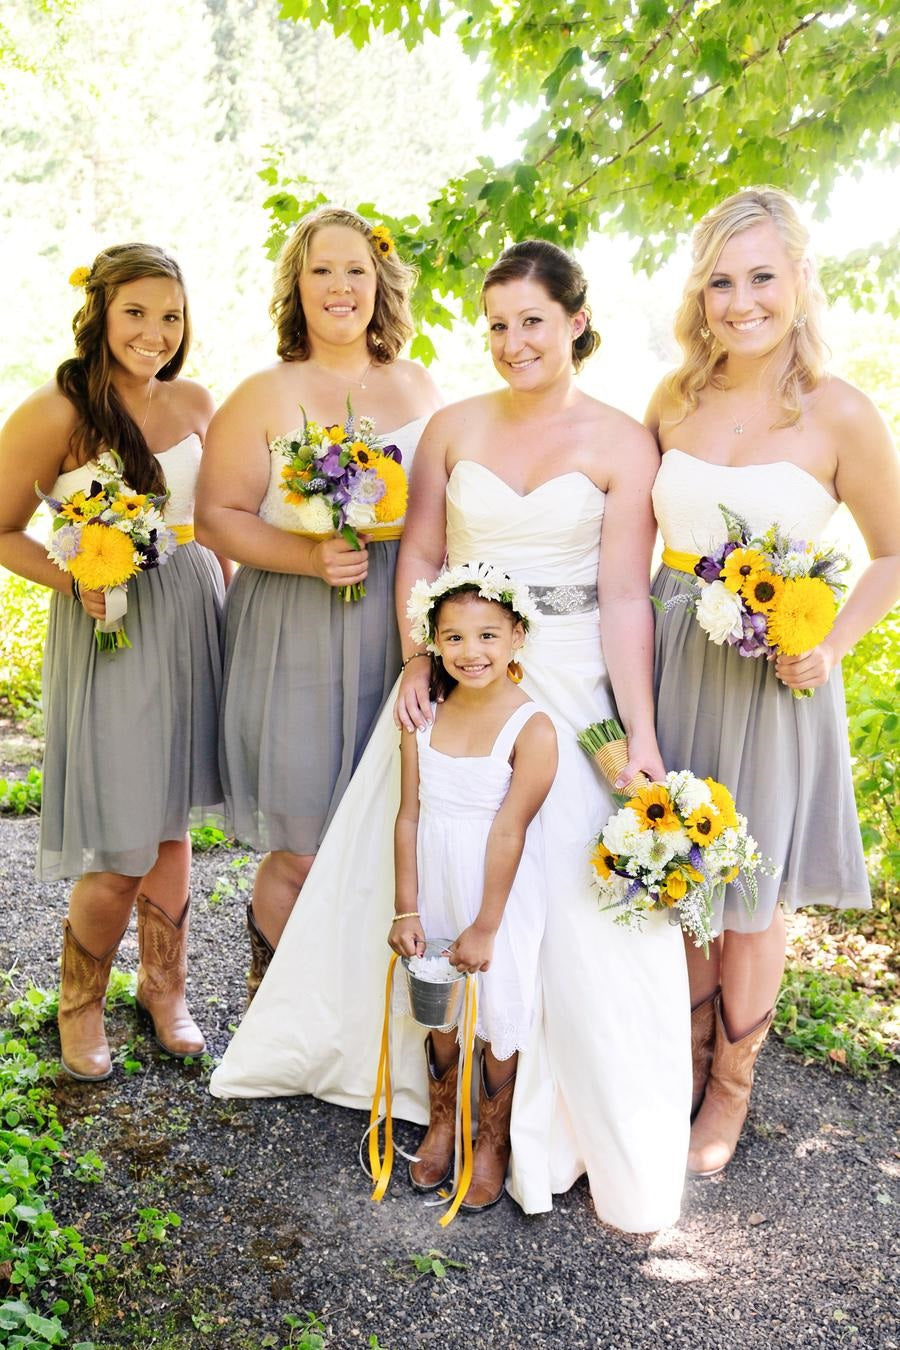 Rustic Short Tulle Two Color Strapless Bridesmaid Dress with Boots,Summer Bridesmaid Dress,20081803